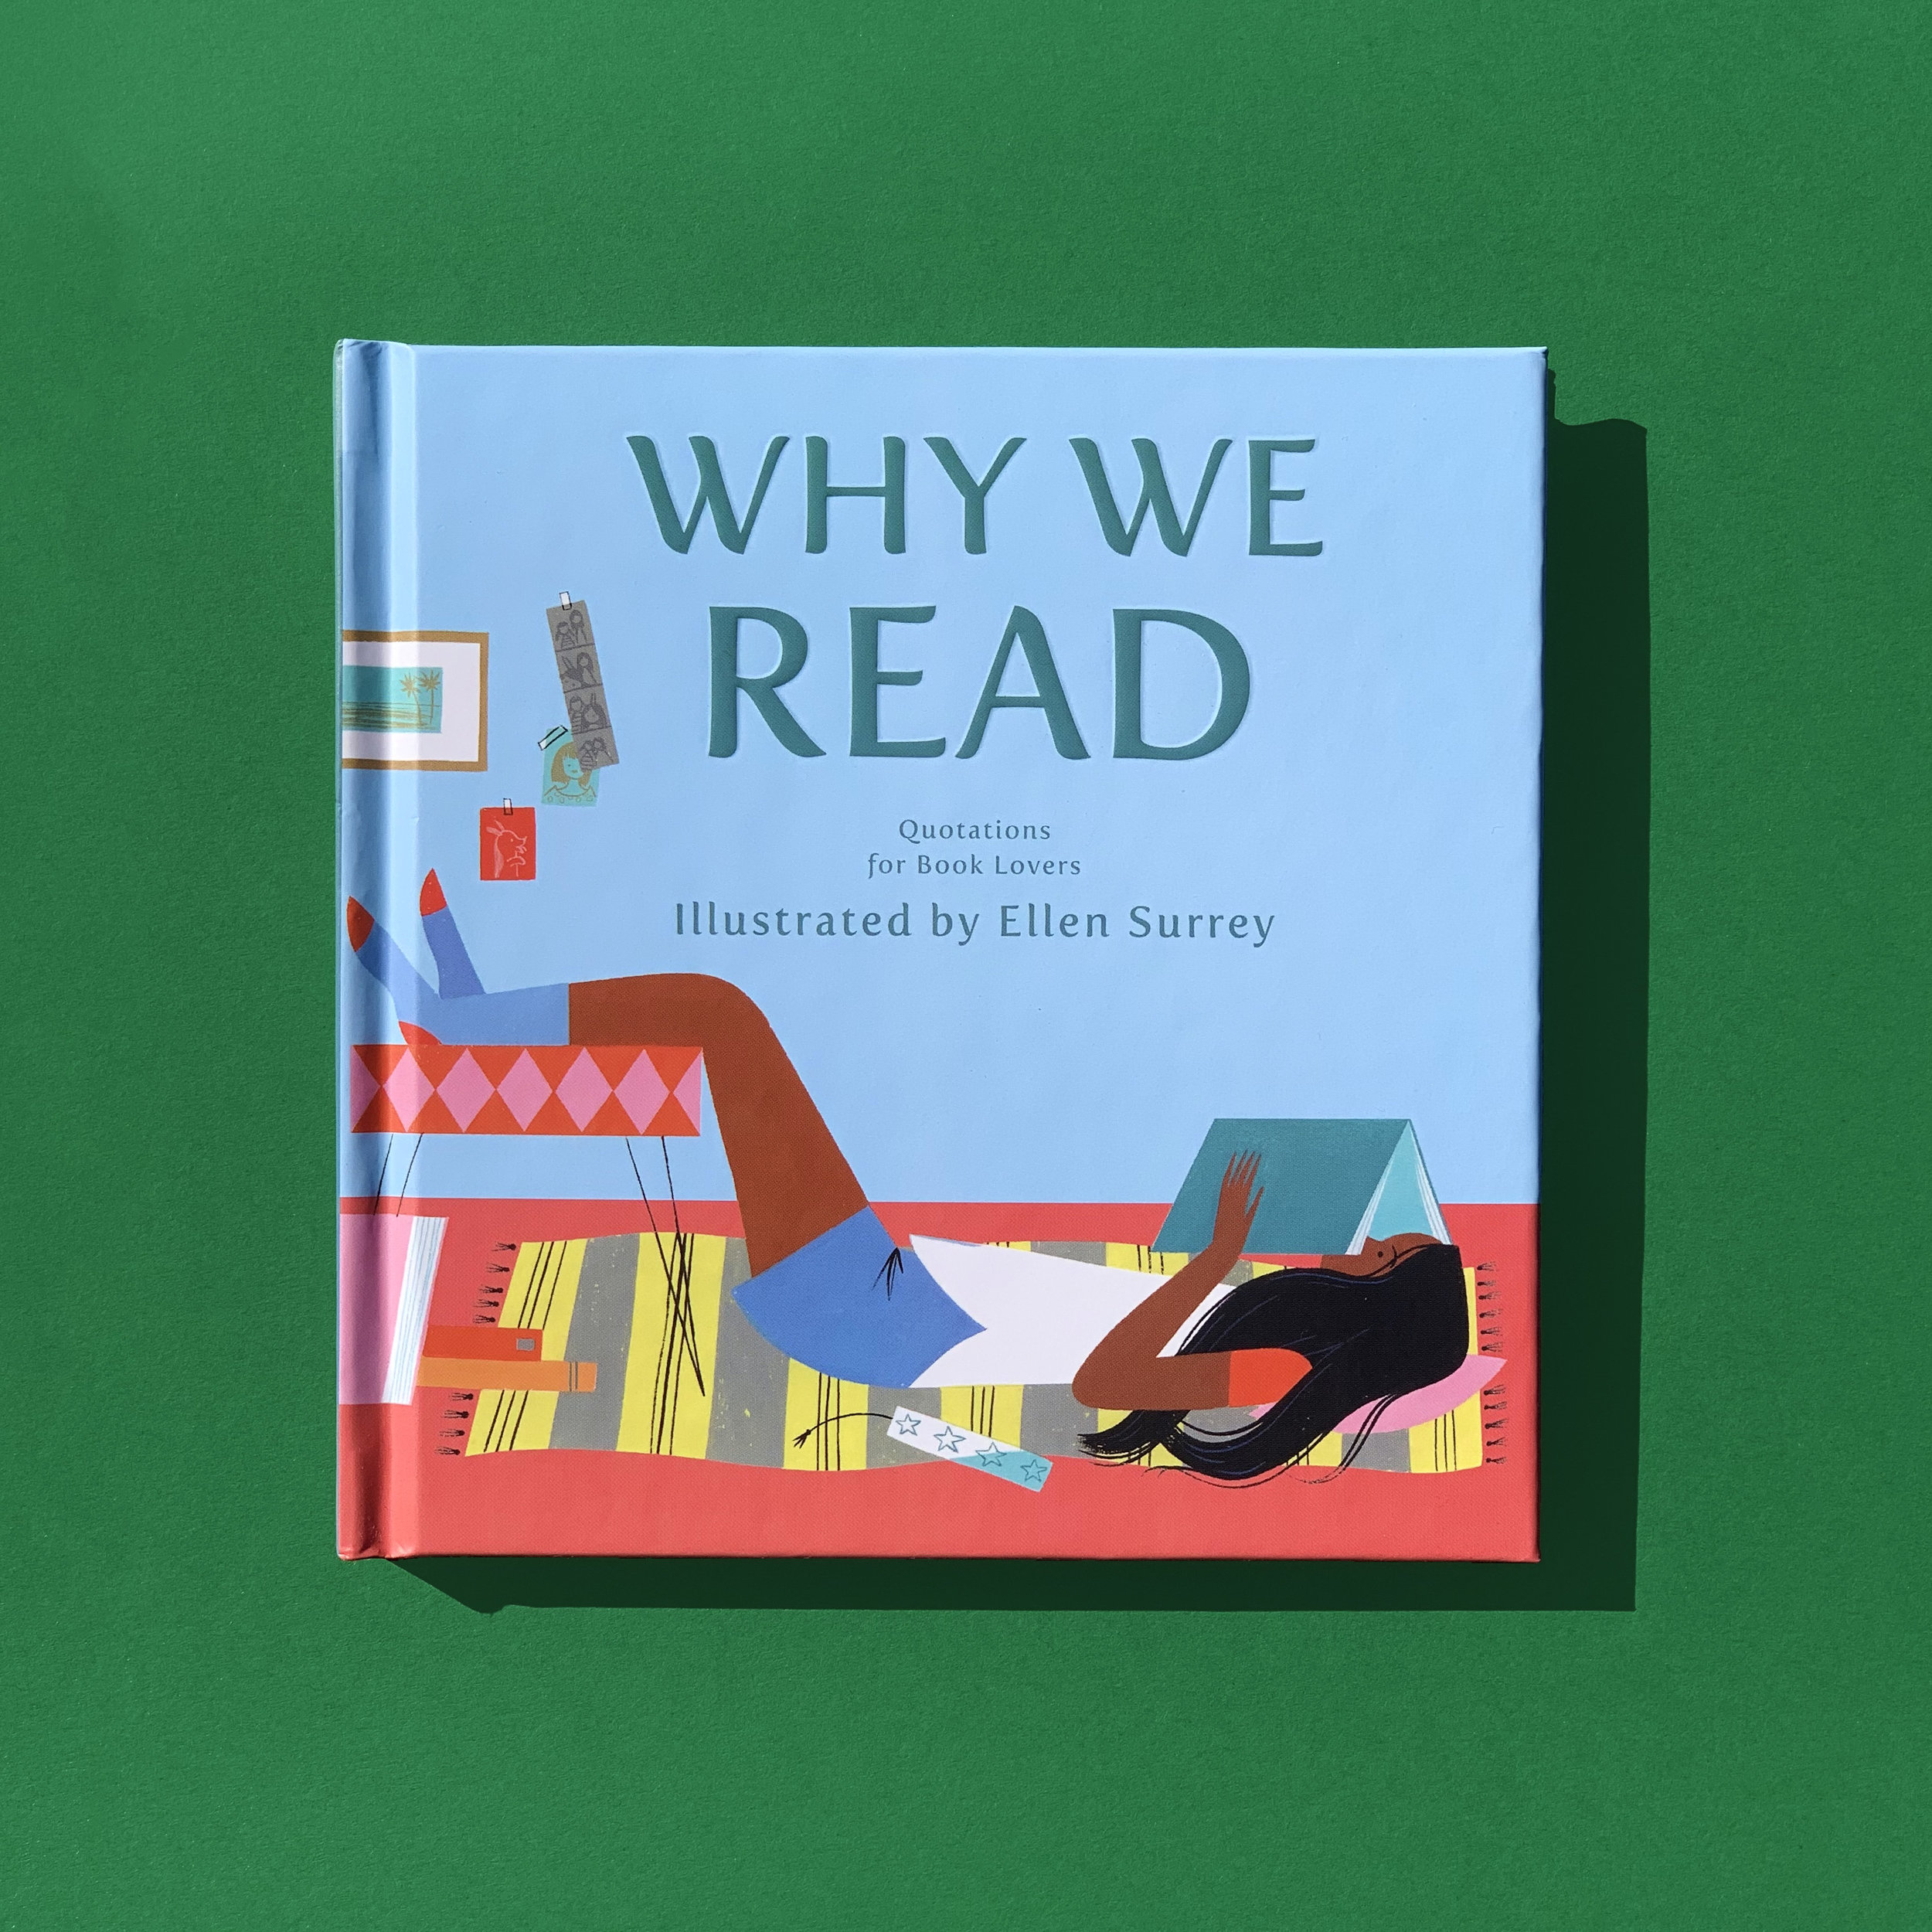 WhyWeRead_Cover_1.jpg